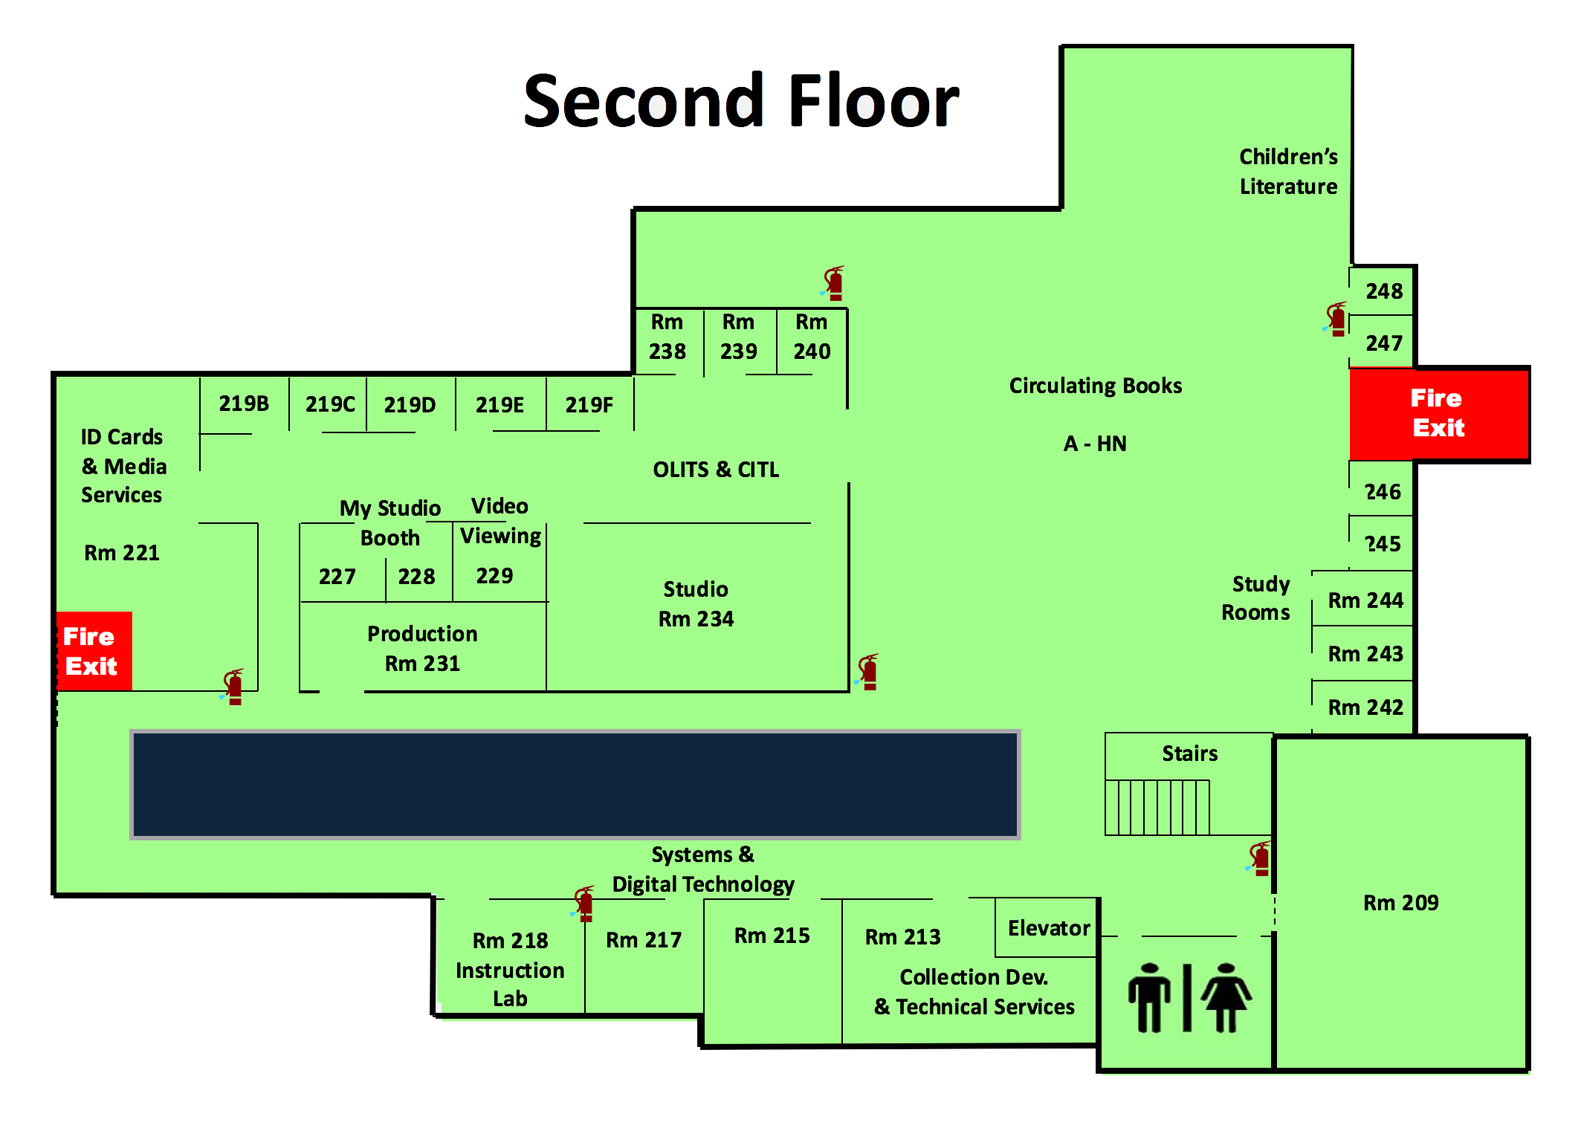 Map of second floor of the library for materials